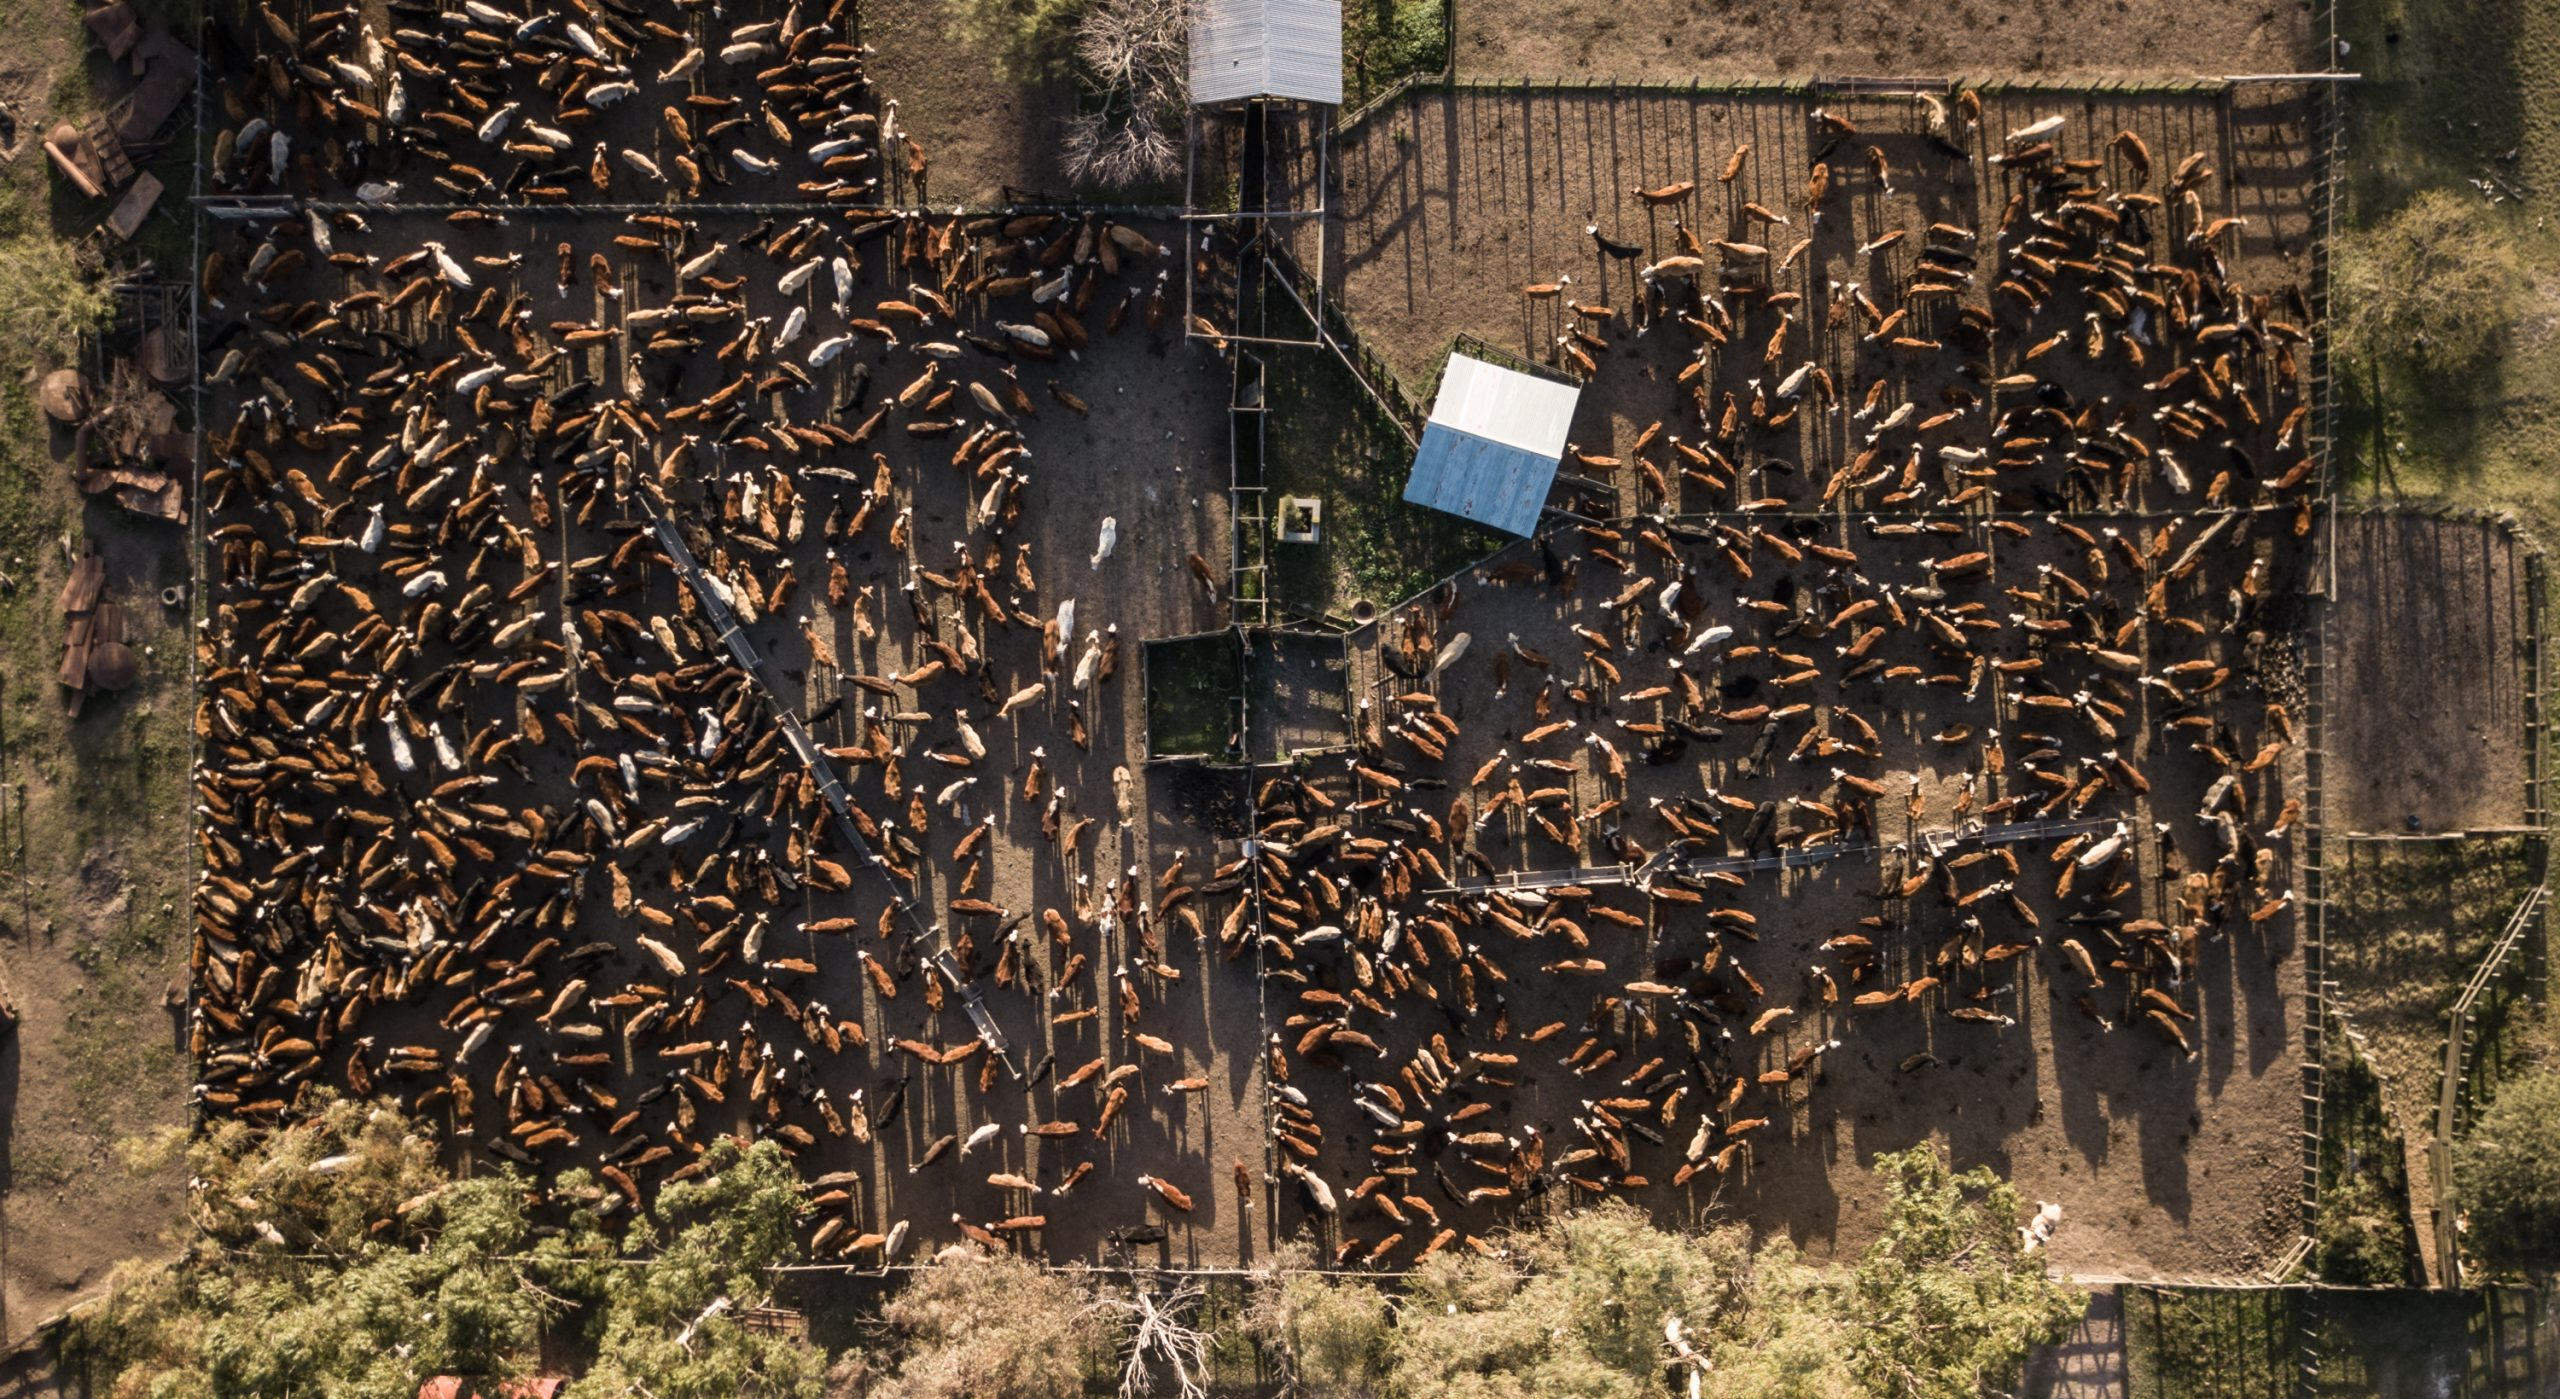 Aerial view of a cattle feedlot.